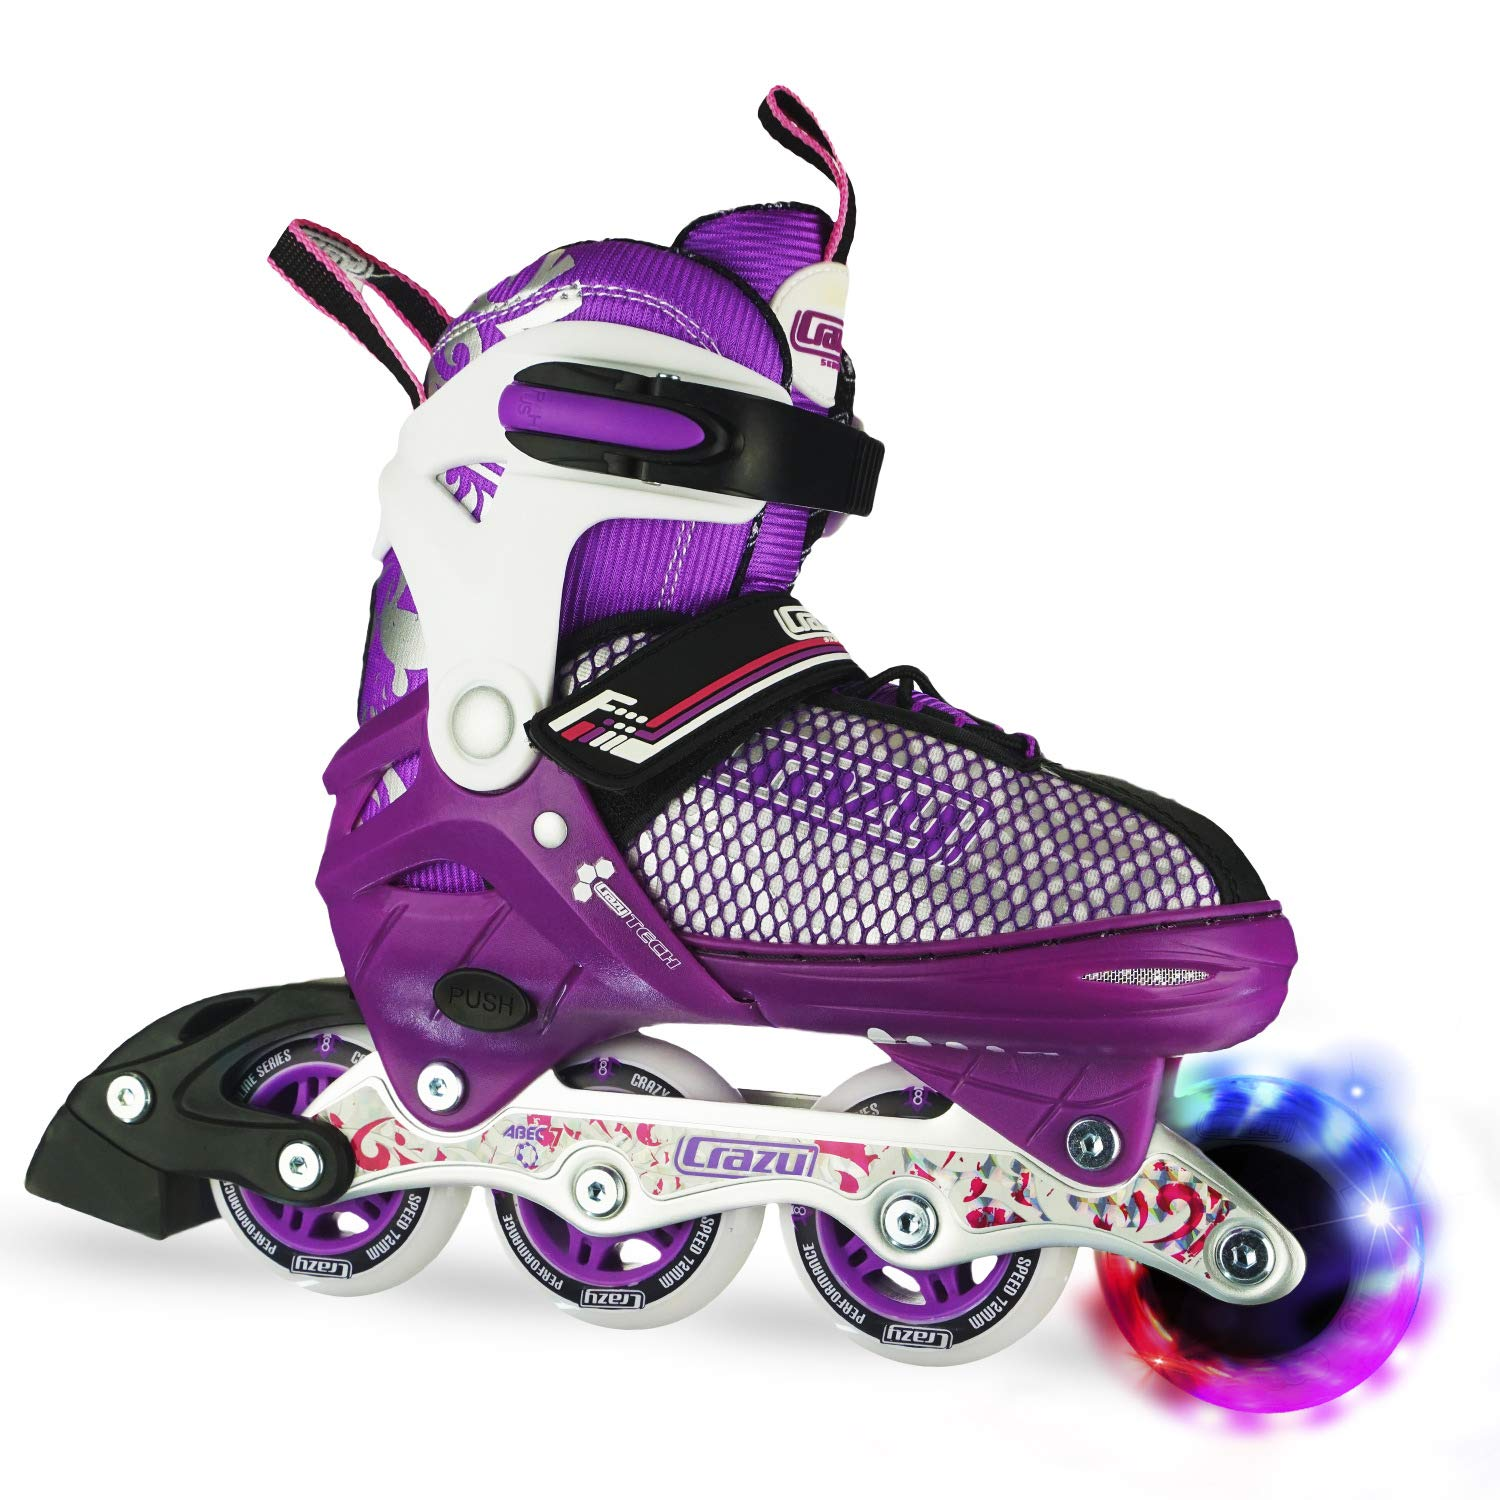 Crazy Skates Adjustable Inline Skates with Light Up Wheels | Roller Blades for Girls | Purple Small (Sizes Jr11-1)